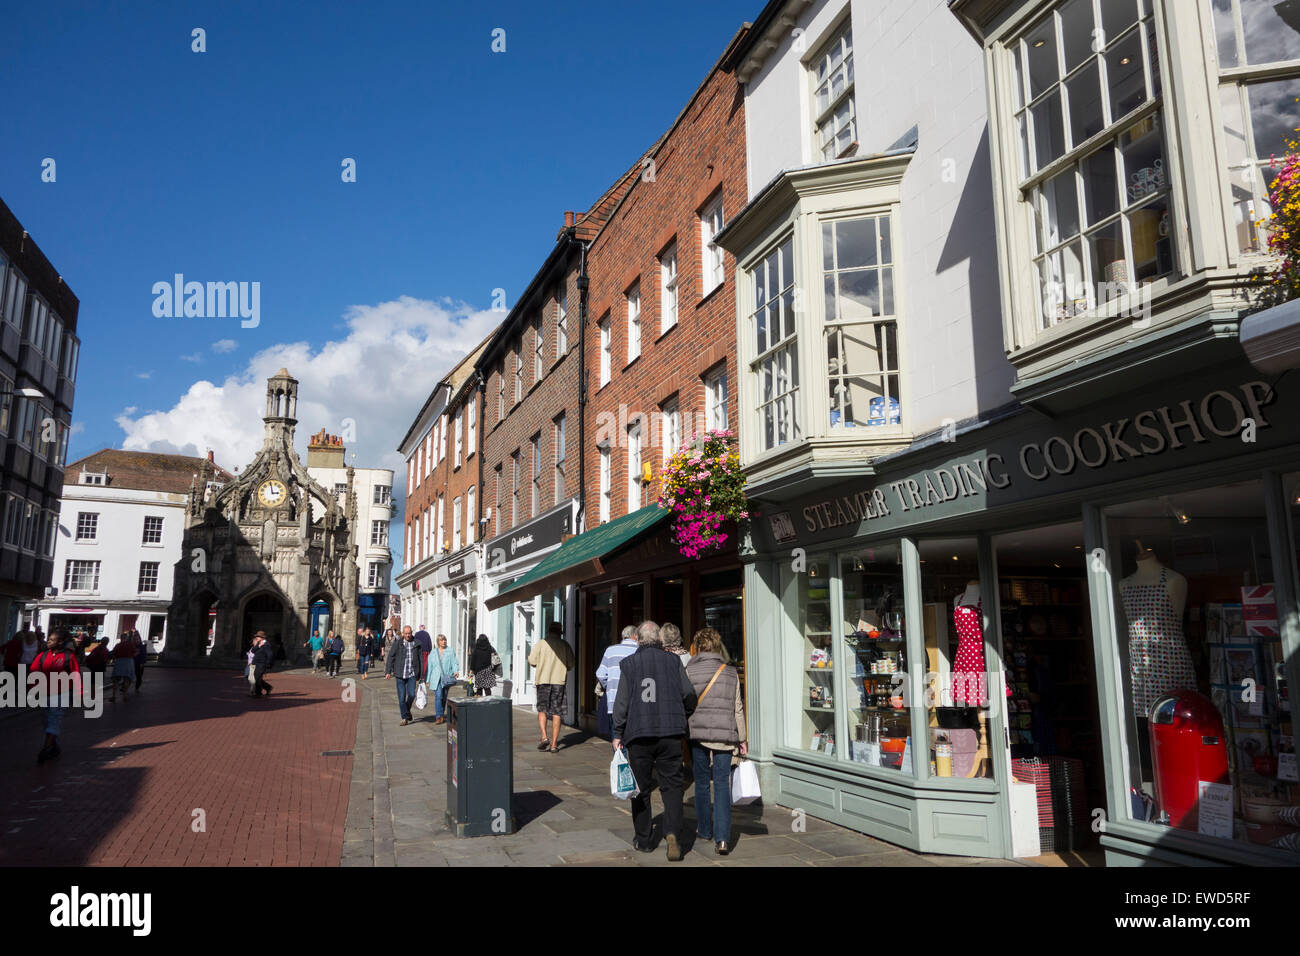 South St Chichester city centre England Stock Photo